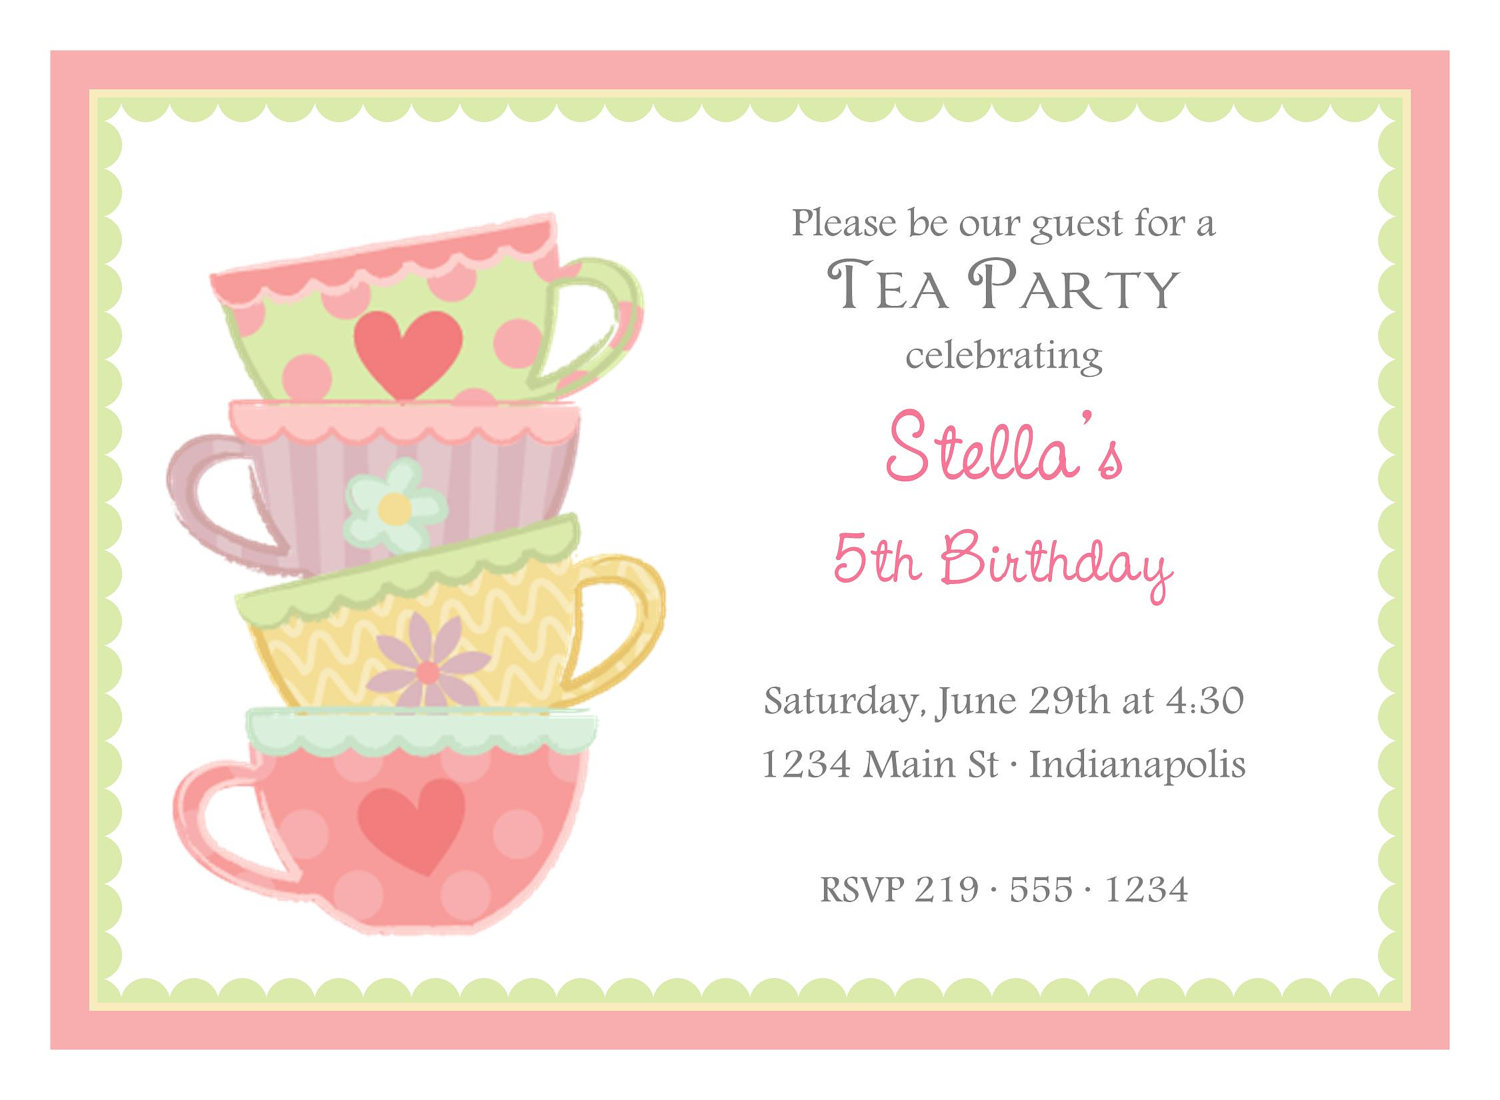 High Tea Party Invitation Wording - Mickey Mouse Invitations Templates